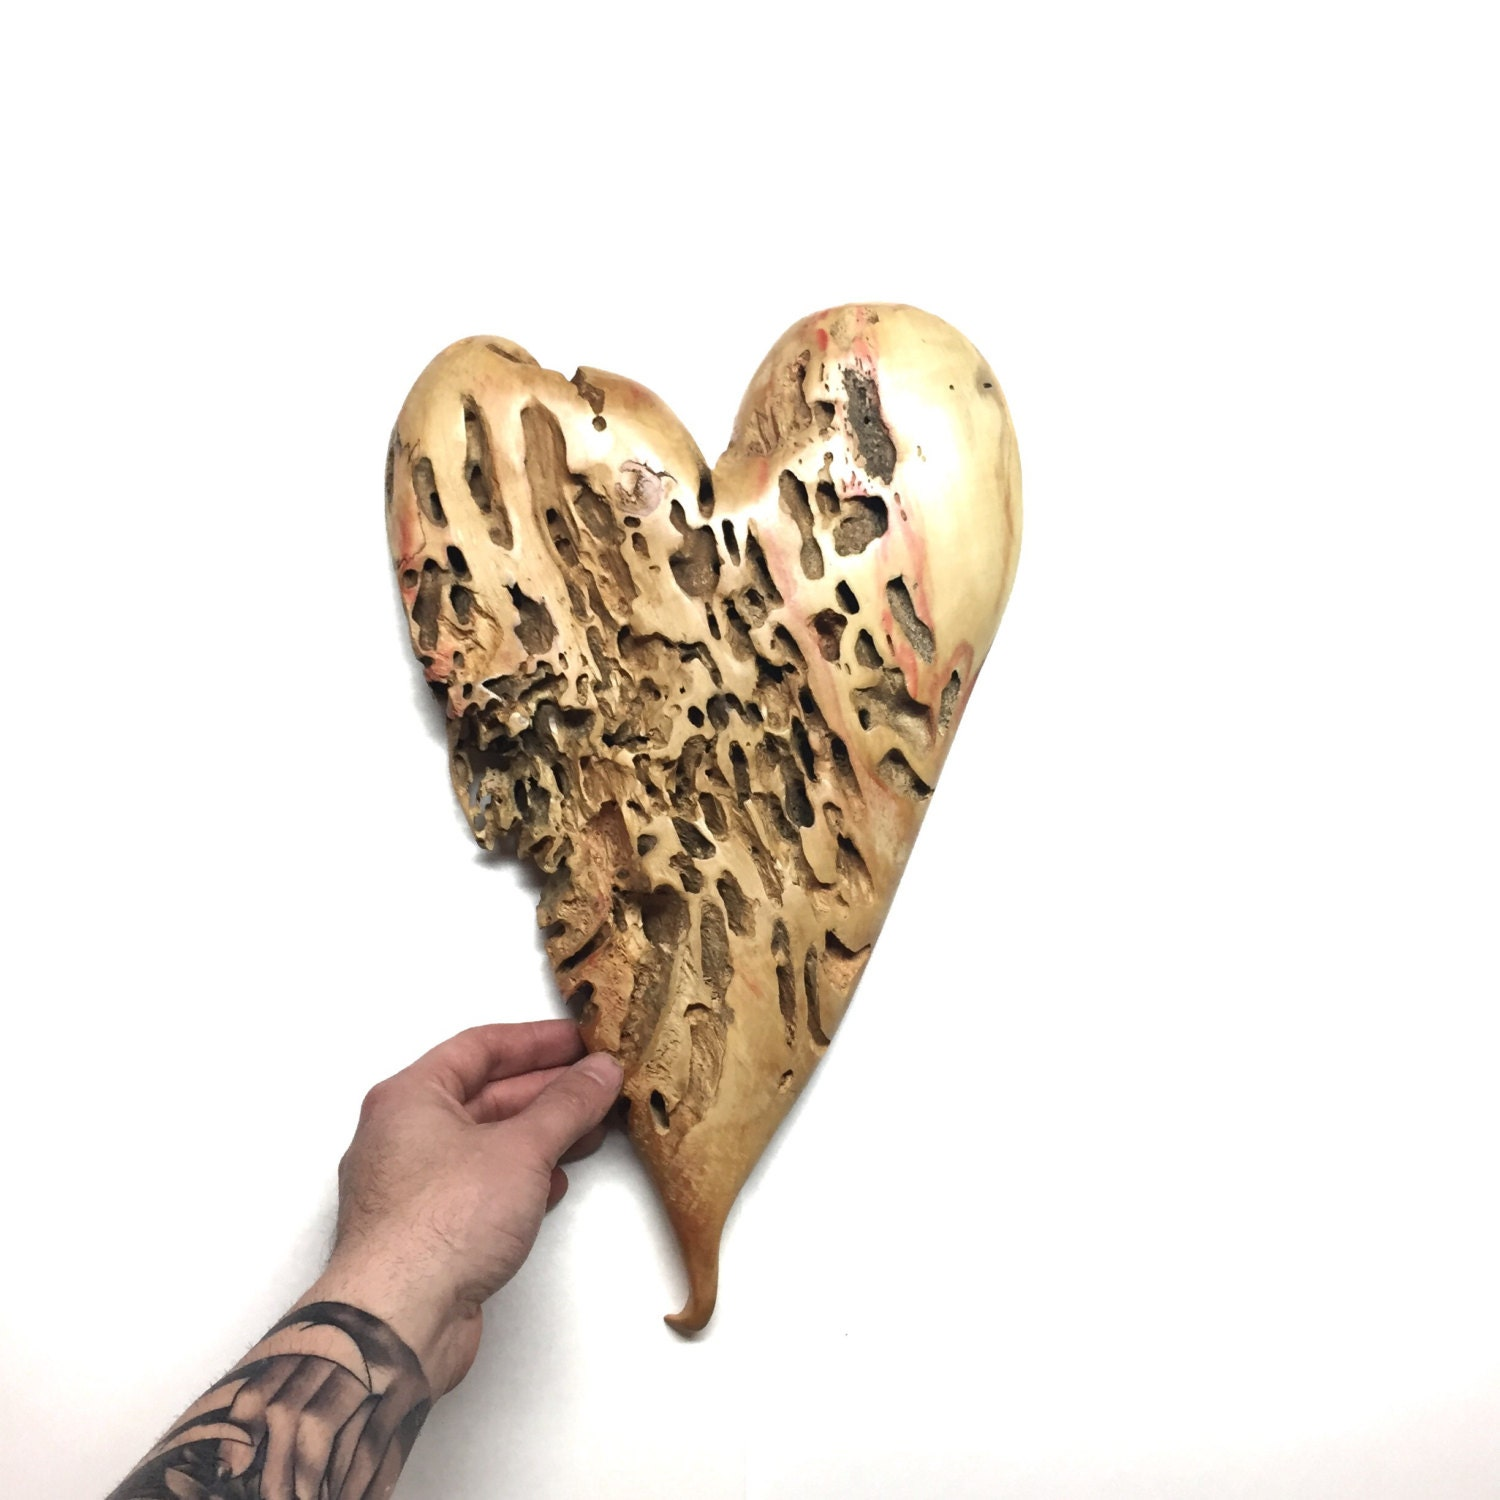 A Personalized 5th Anniversary Wood Gift Hand Carved Heart Carving Sculpture For Her Handmade Woodworking Original Art